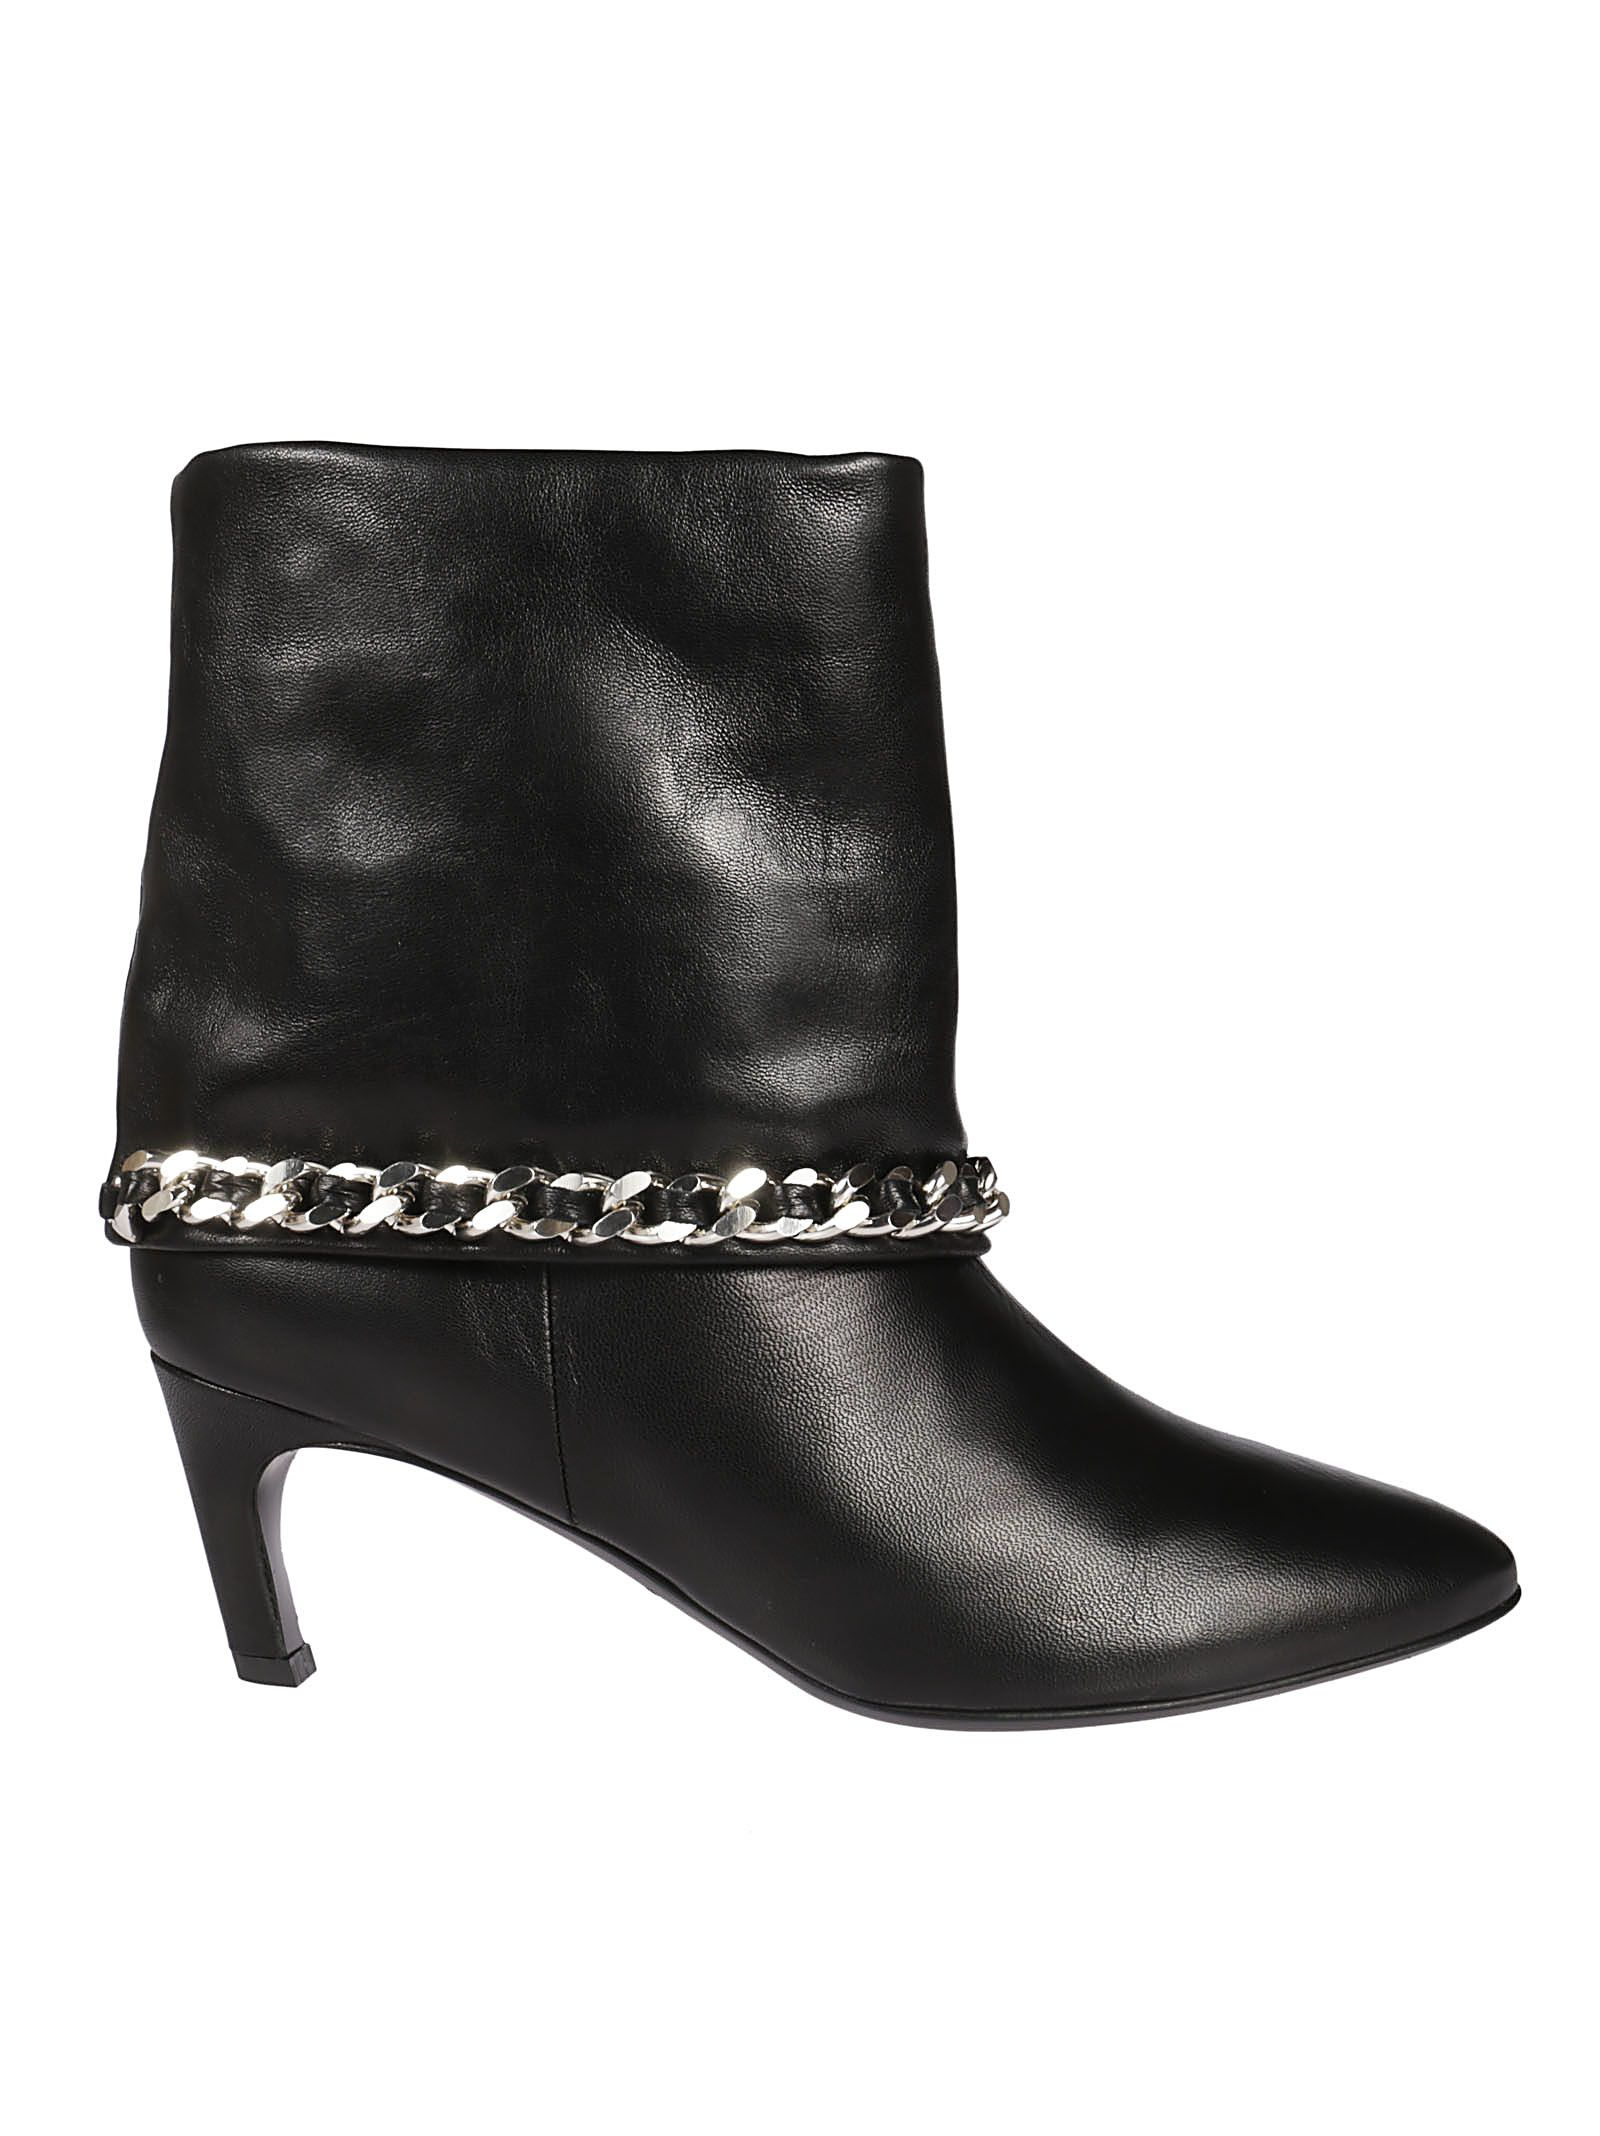 Marc Ellis Chain-wrapped Ankle Boots